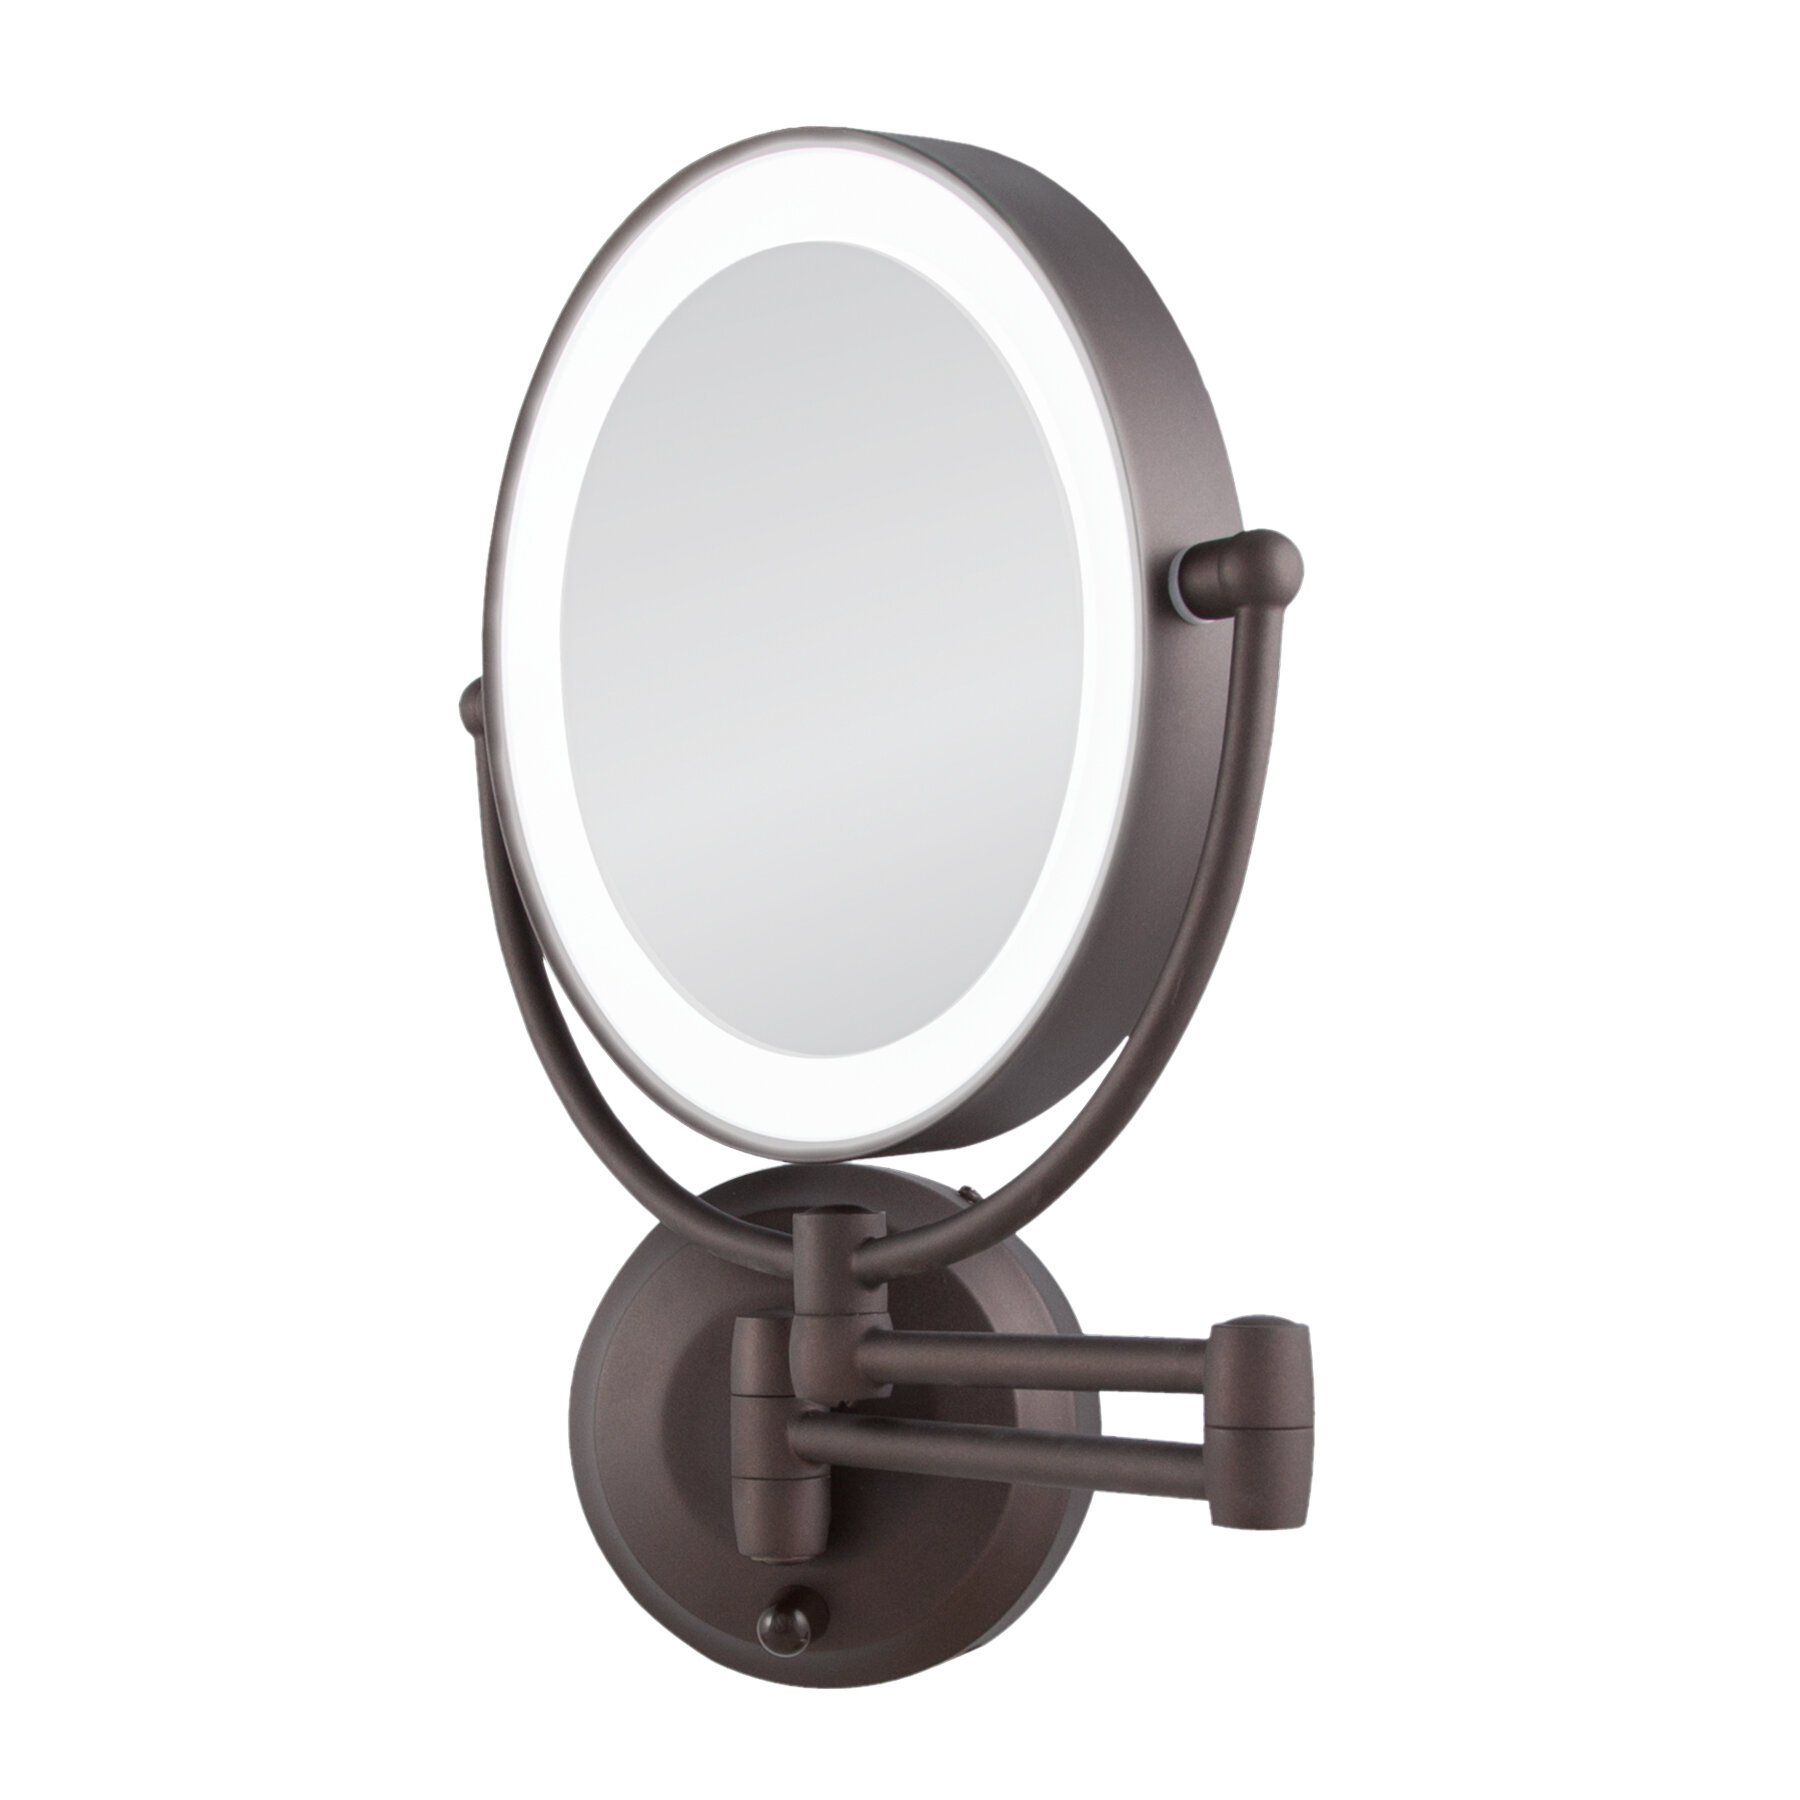 Darby Home Co Aldona Modern & Contemporary Makeup/shaving Mirror Within Harbert Modern And Contemporary Distressed Accent Mirrors (Image 3 of 20)